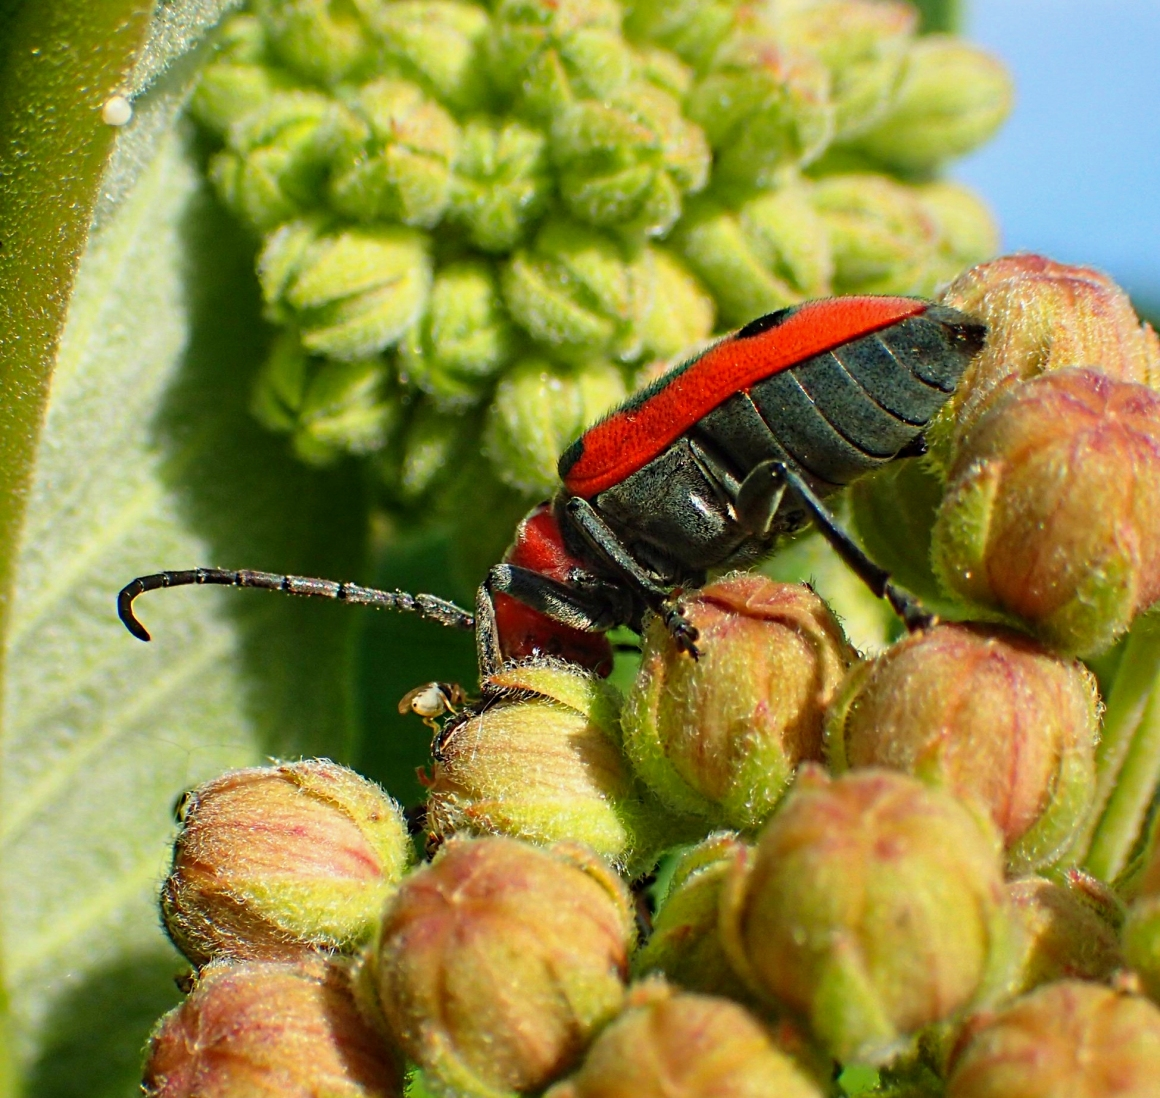 Fruit-fly trying to eat the Milkweed Beetle's scraps from a distance!  Photo by Thomas Peace 2014